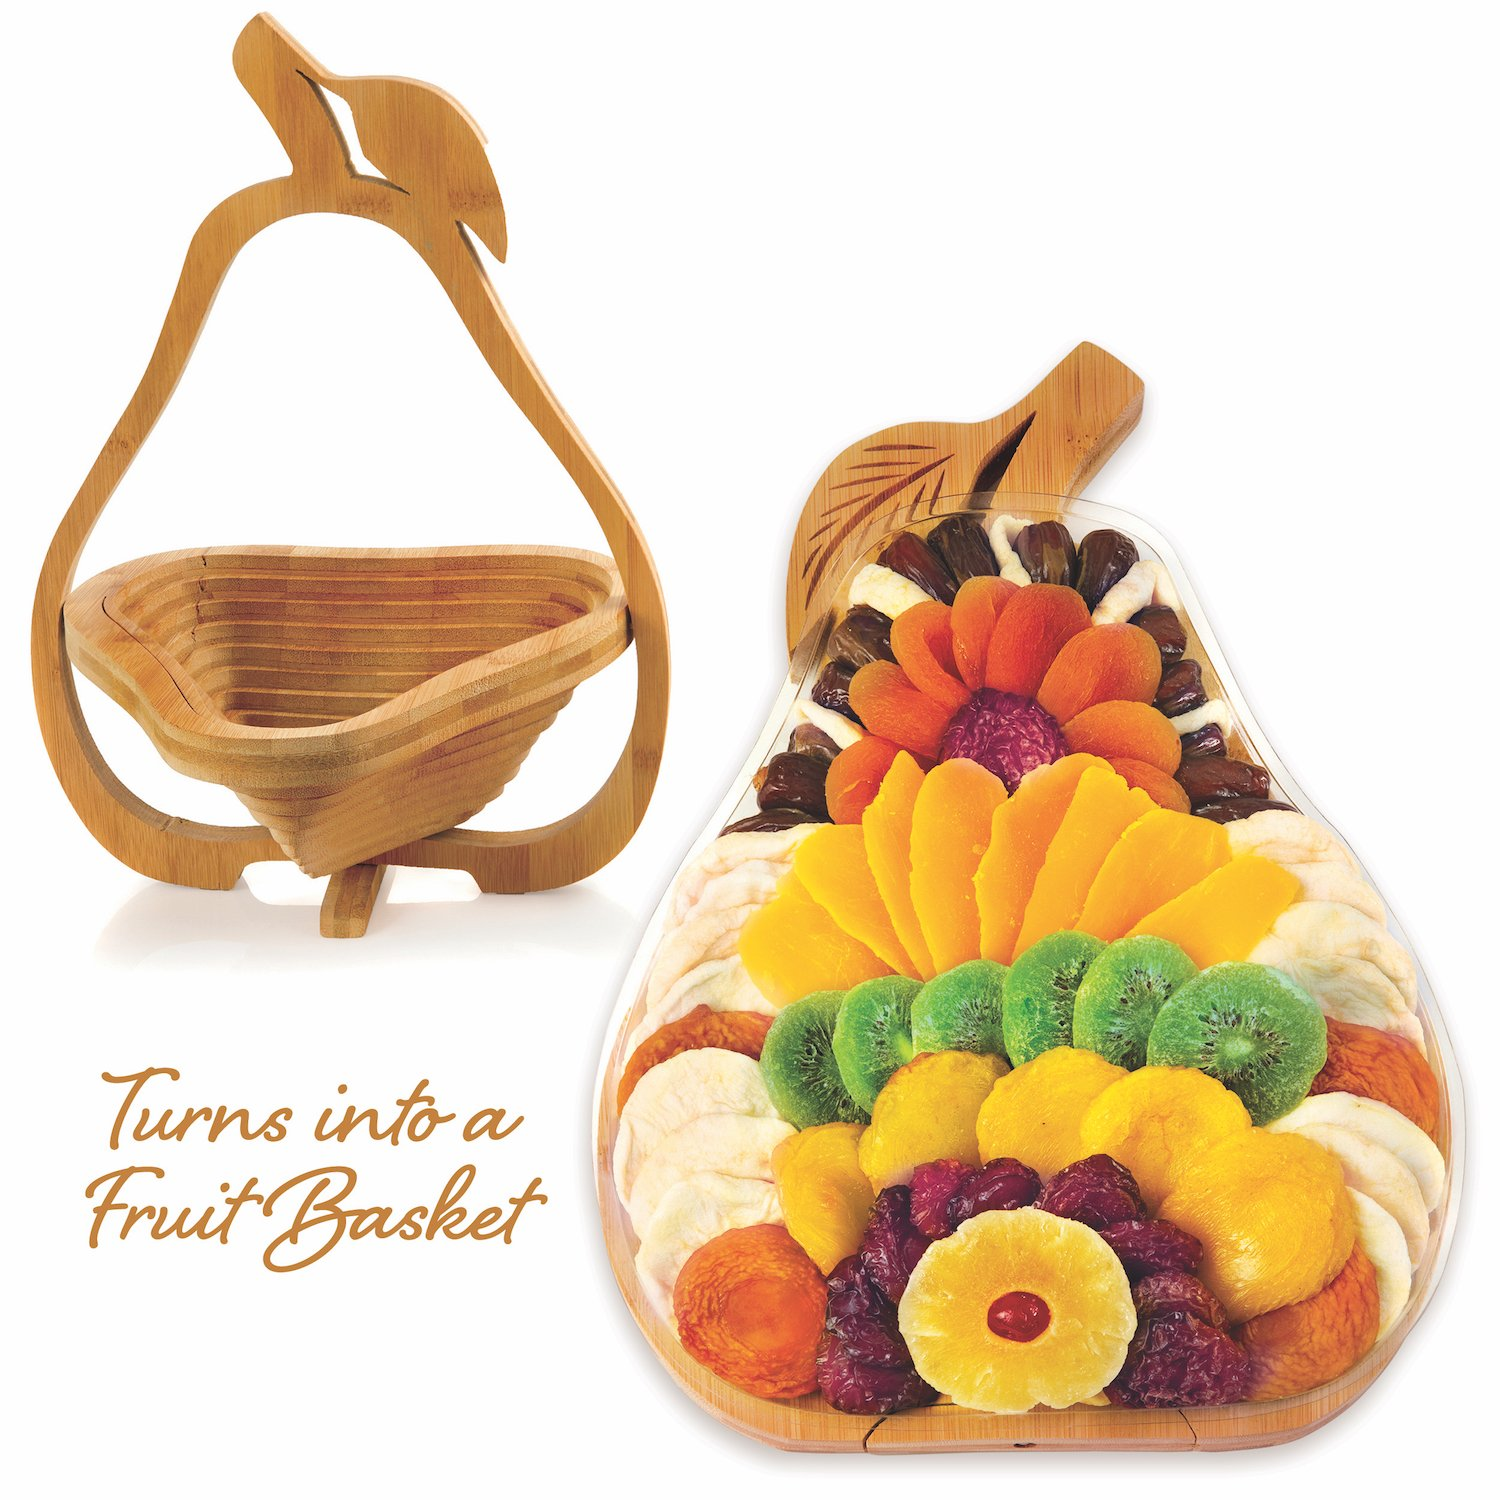 Gourmand Gifts Large Premium Dried Fruit Gift Basket Pear Tray, Multi-Functional Foldable Tray, Trivet and Fruit Basket 31 OZ